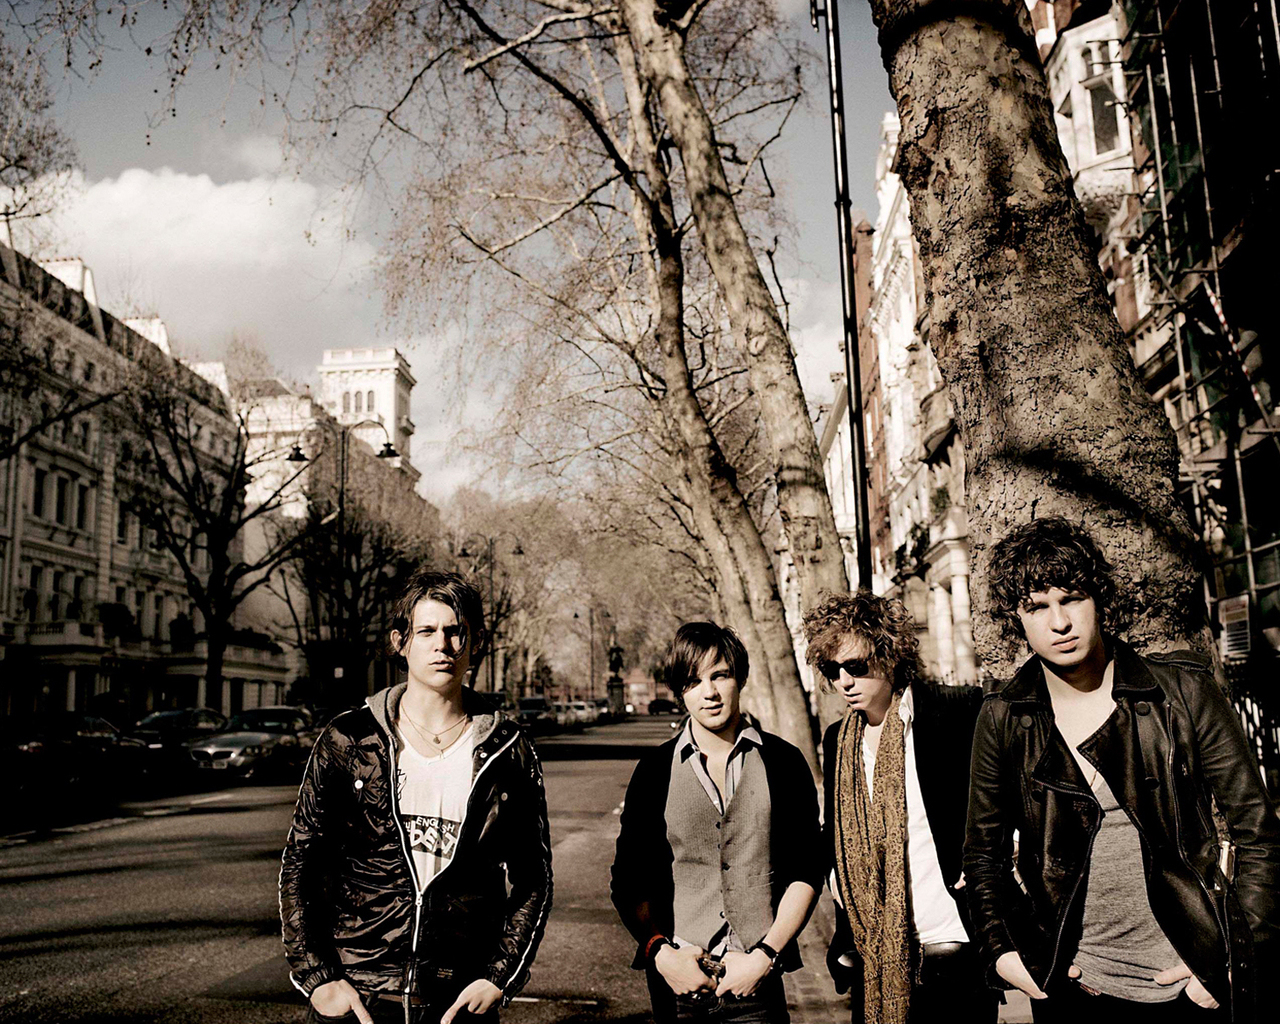 Pictures The Kooks wallpapers on your desktop computer wallpapers 1280x1024